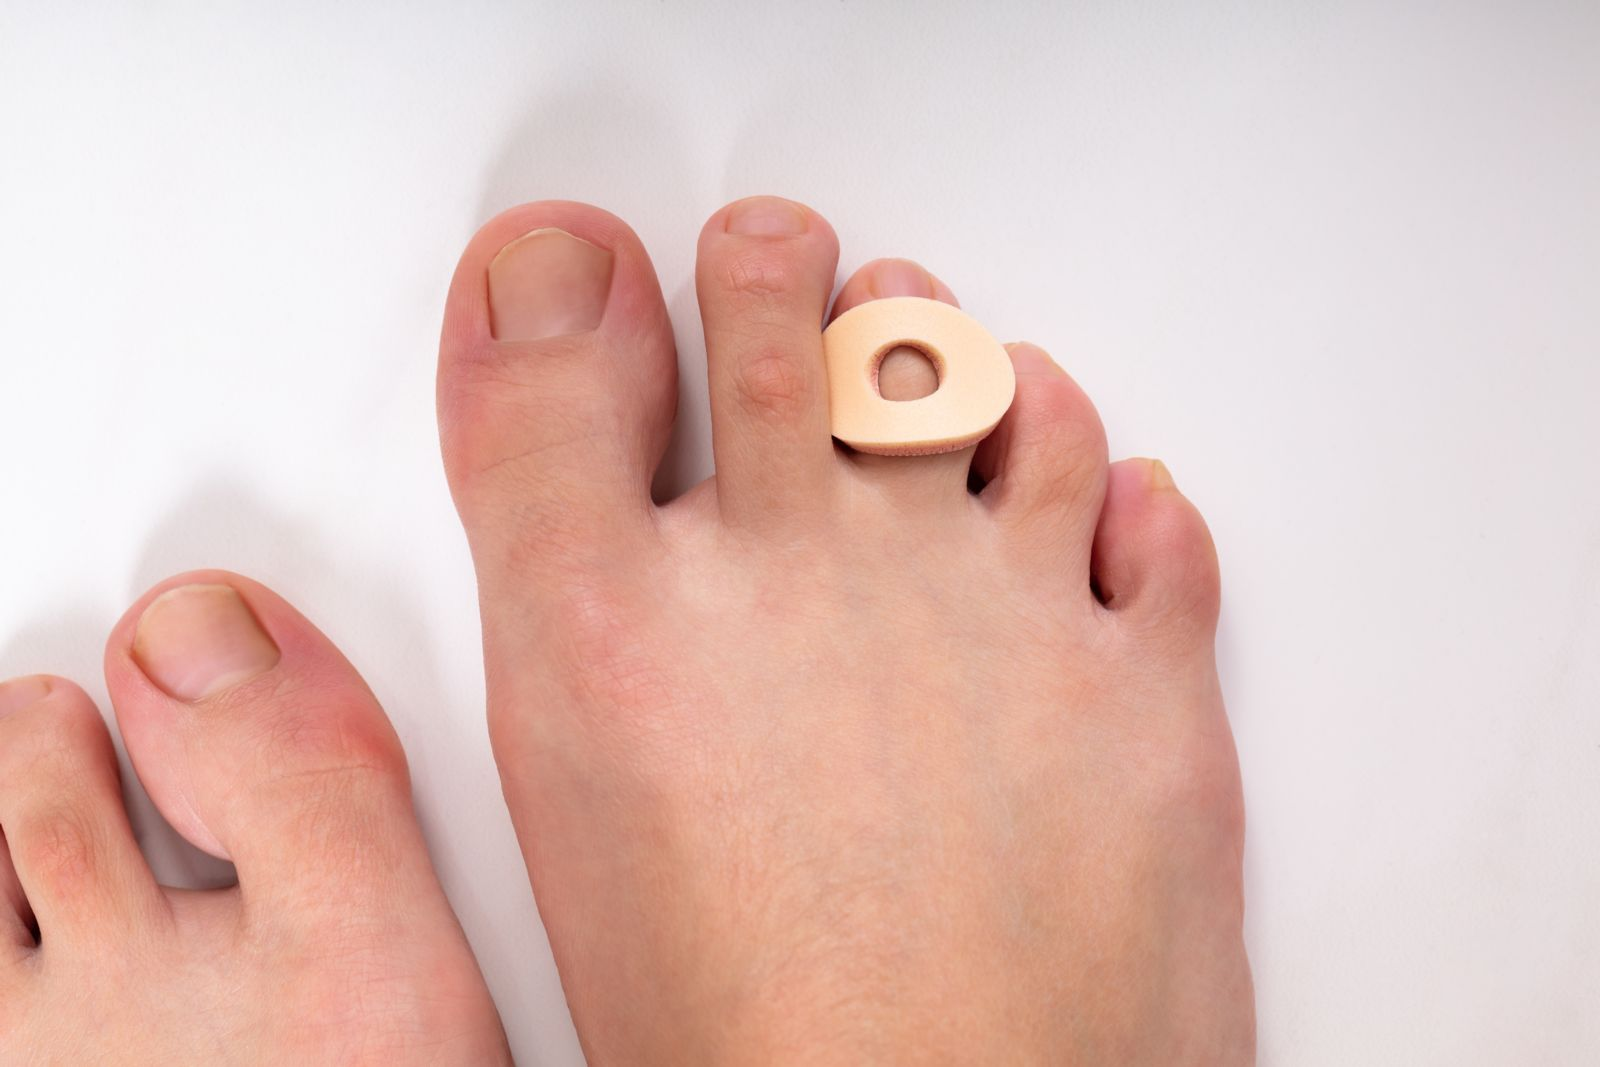 Houston podiatrist recommends non-medicated corn pads to treat toe pain